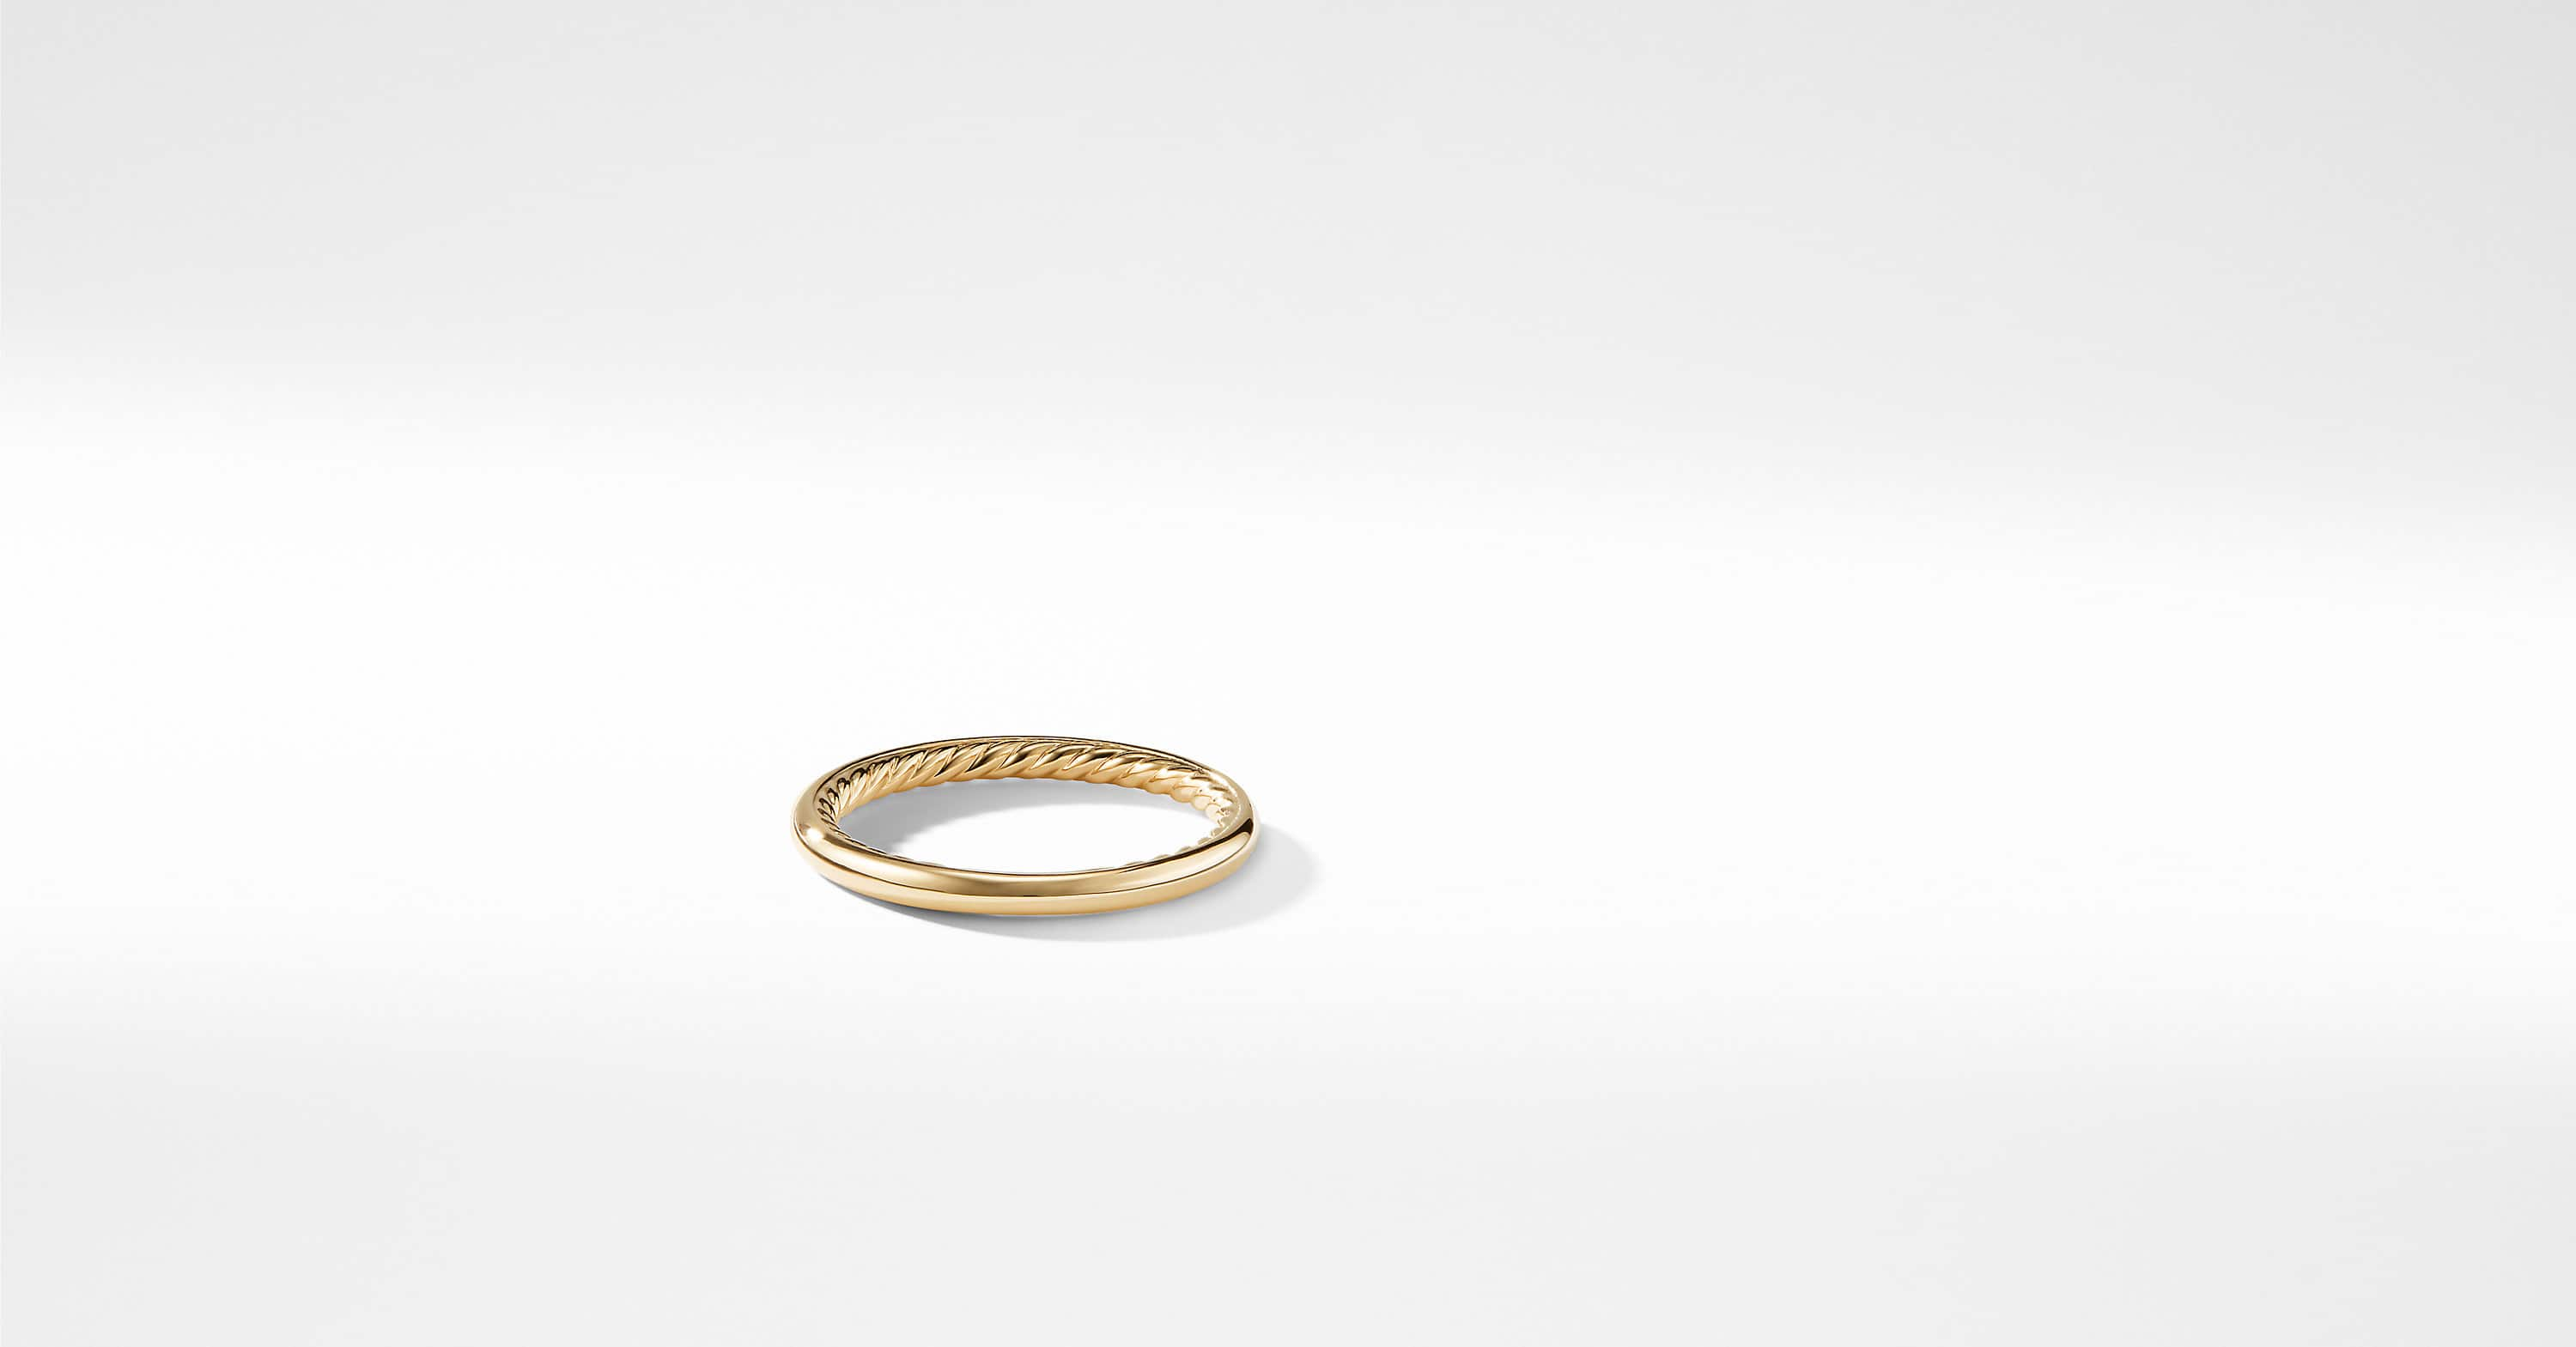 DY Eden Smooth Wedding Band in 18K Gold, 2mm